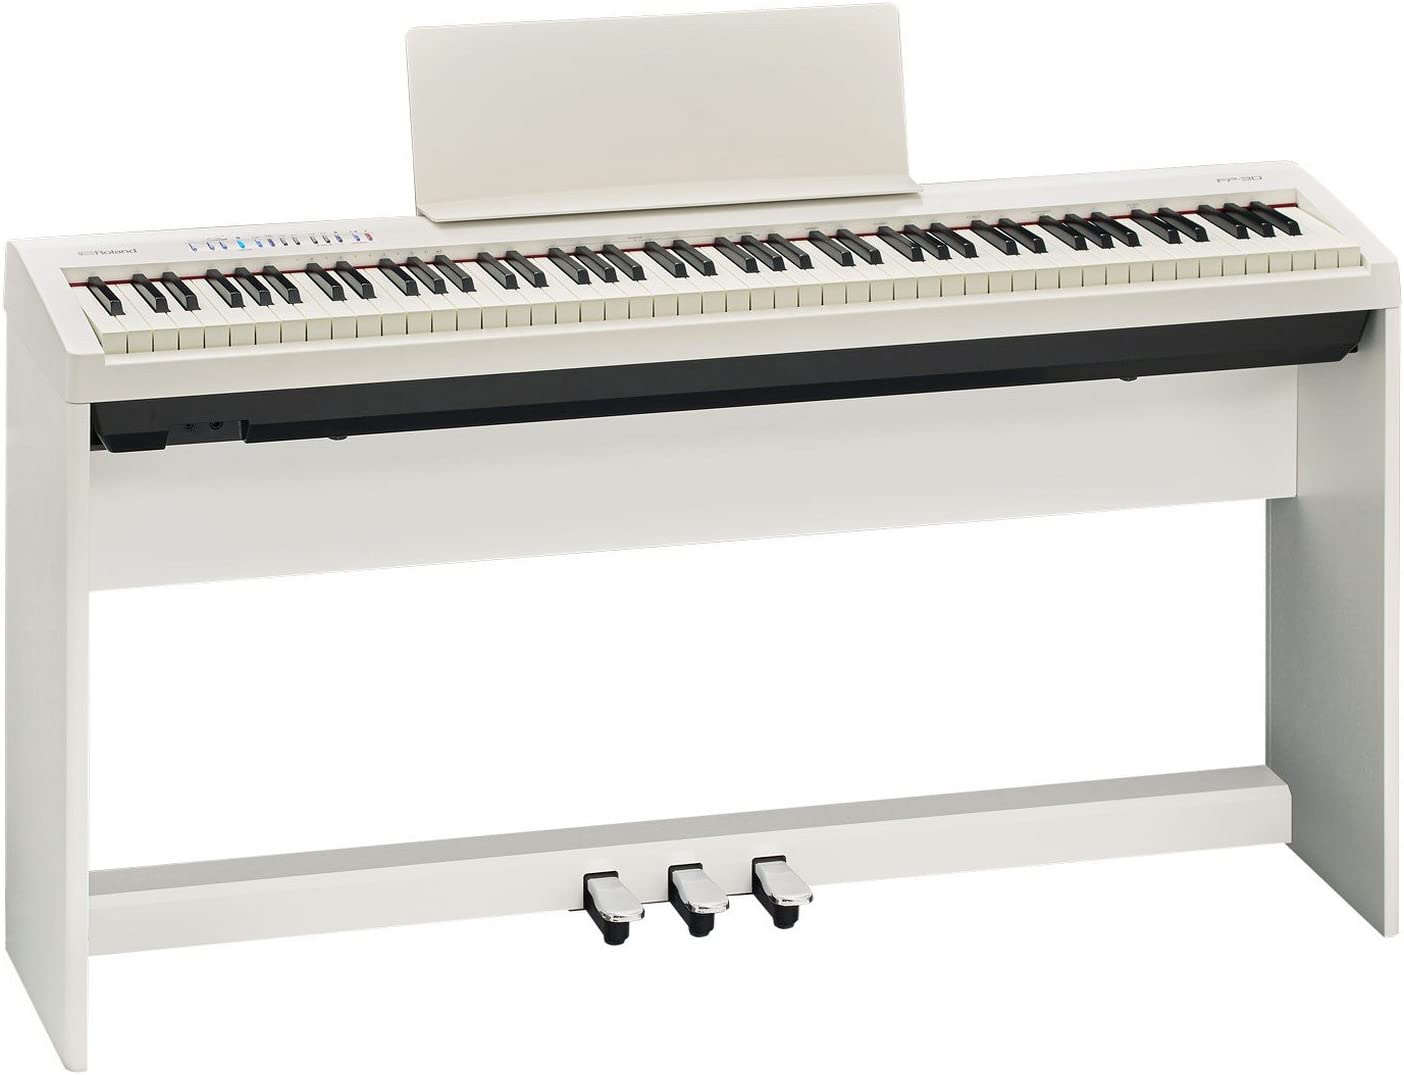 Roland Fp 30 Whc Portable 88 Key Digital Piano With Stand Pedal Board White Amazon Ca Electronics